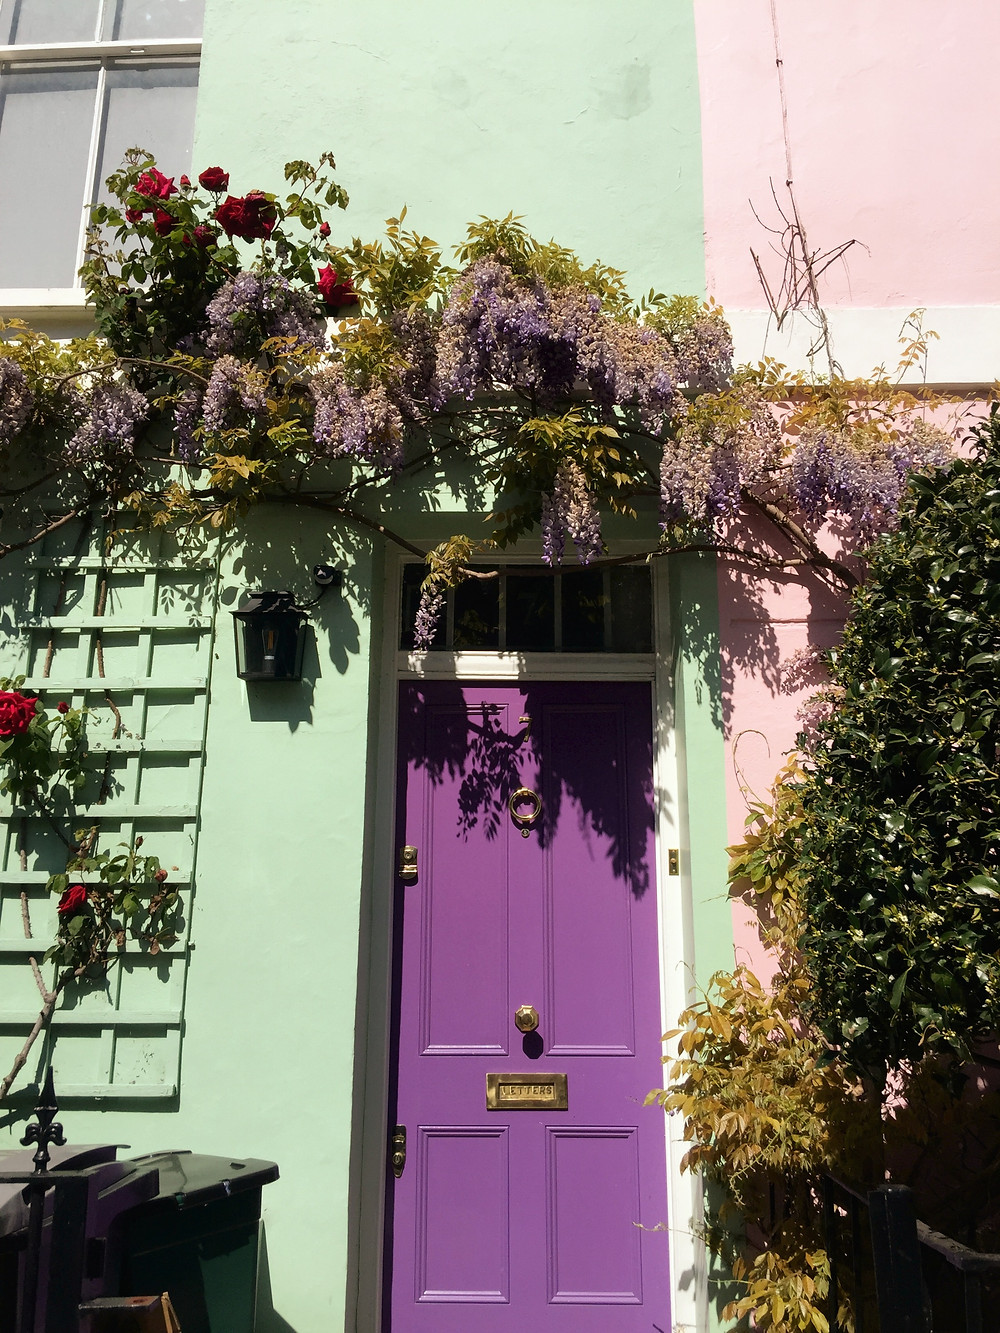 Wisteria and deep red roses frame a purple door on the front of a seafoam green house